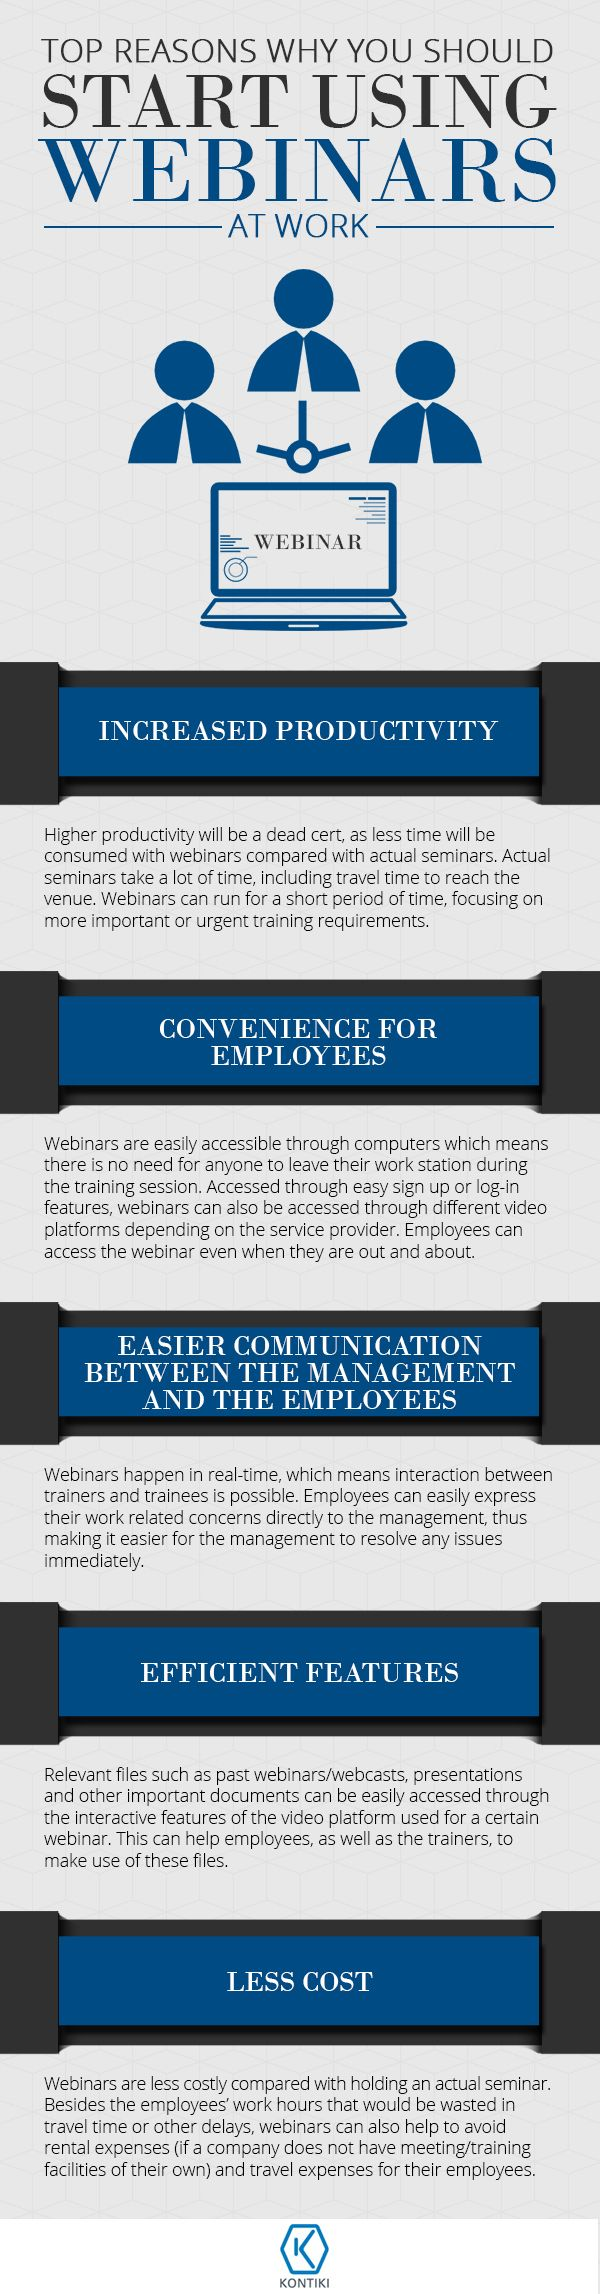 #Infographic: Top Reasons Why You Should Start Using Webinars at Work